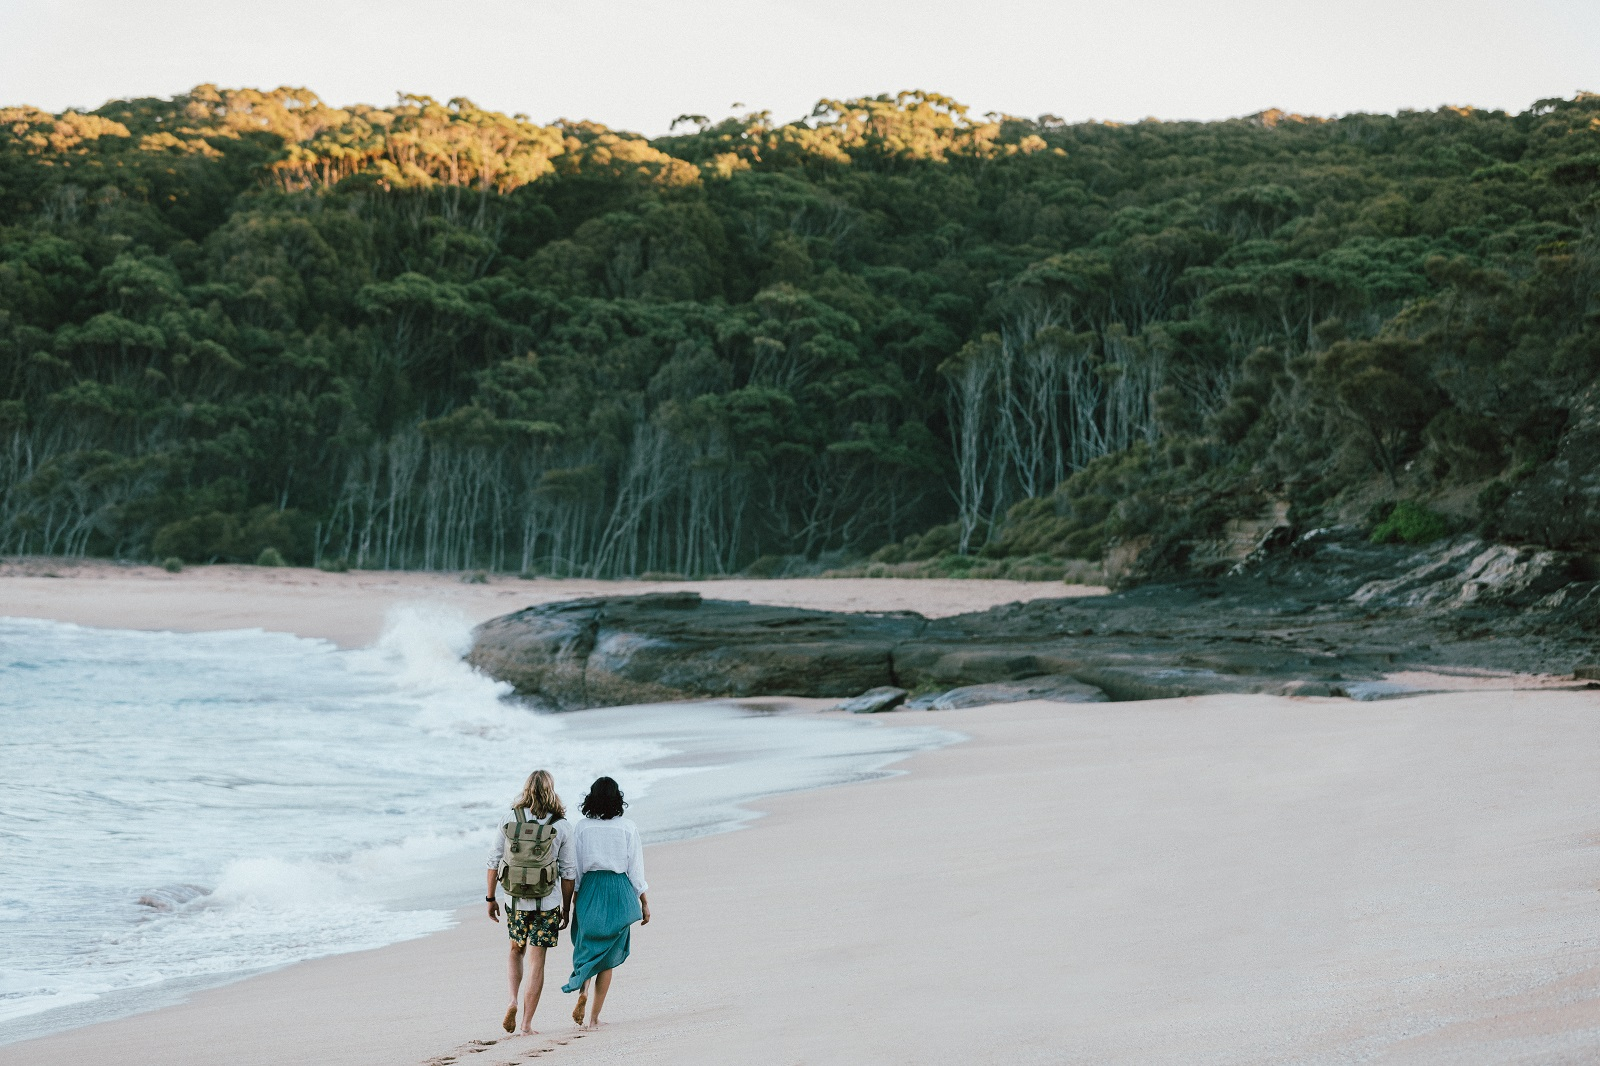 A man and woman walking along Emily Miller Beach in Murramarang National Park